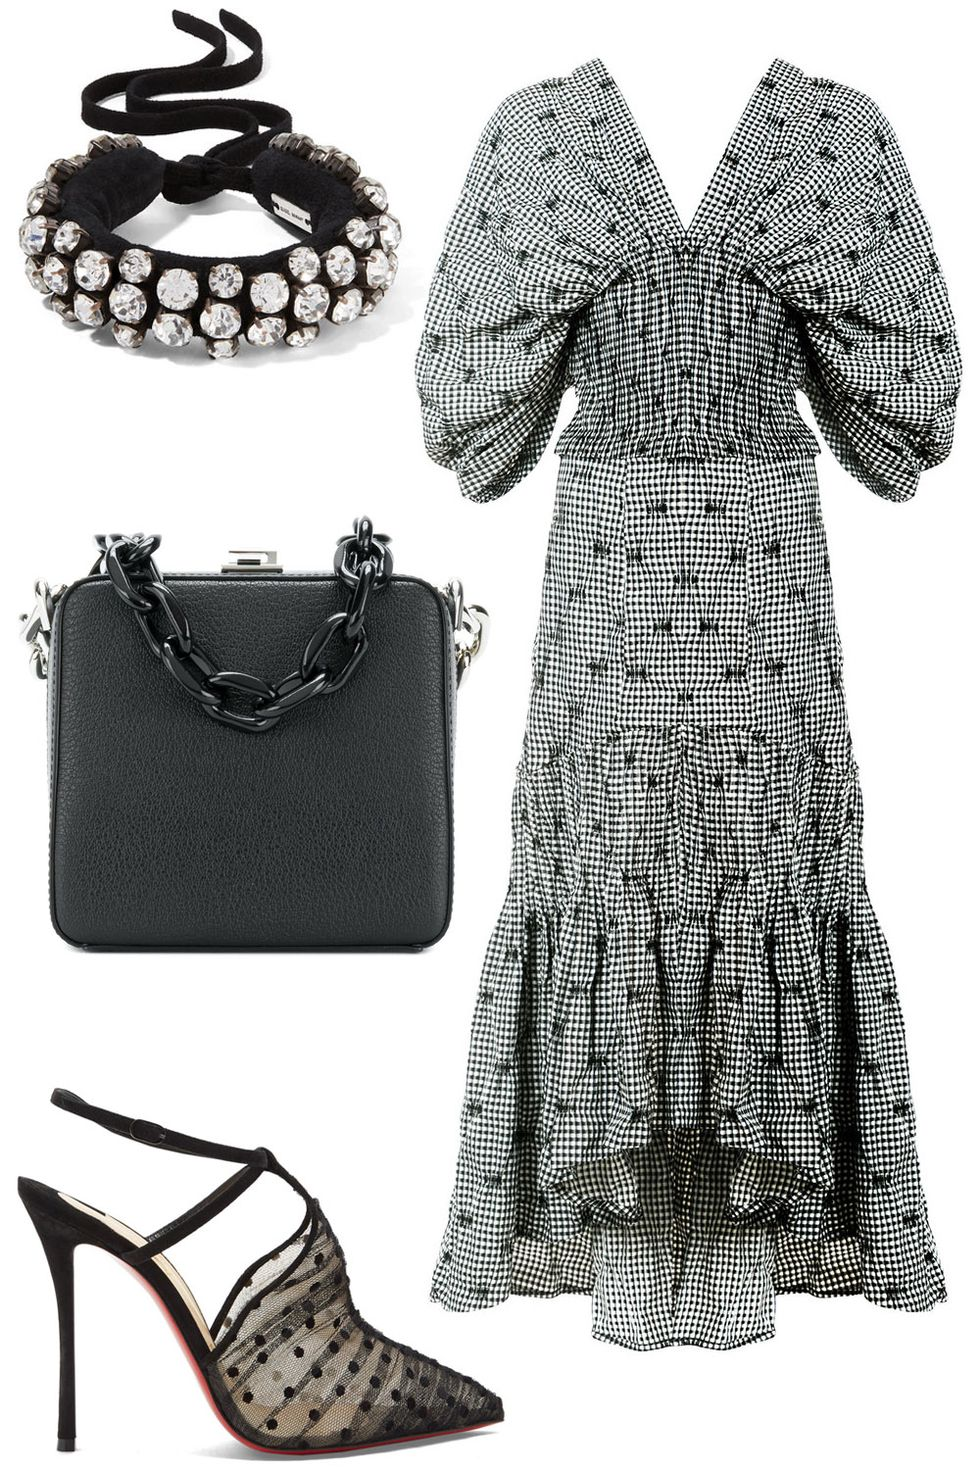 what-to-wear-for-a-summer-wedding-guest-outfit-white-dress-peasant-midi-gingham-print-black-bag-black-shoe-pumps-dinner.jpg